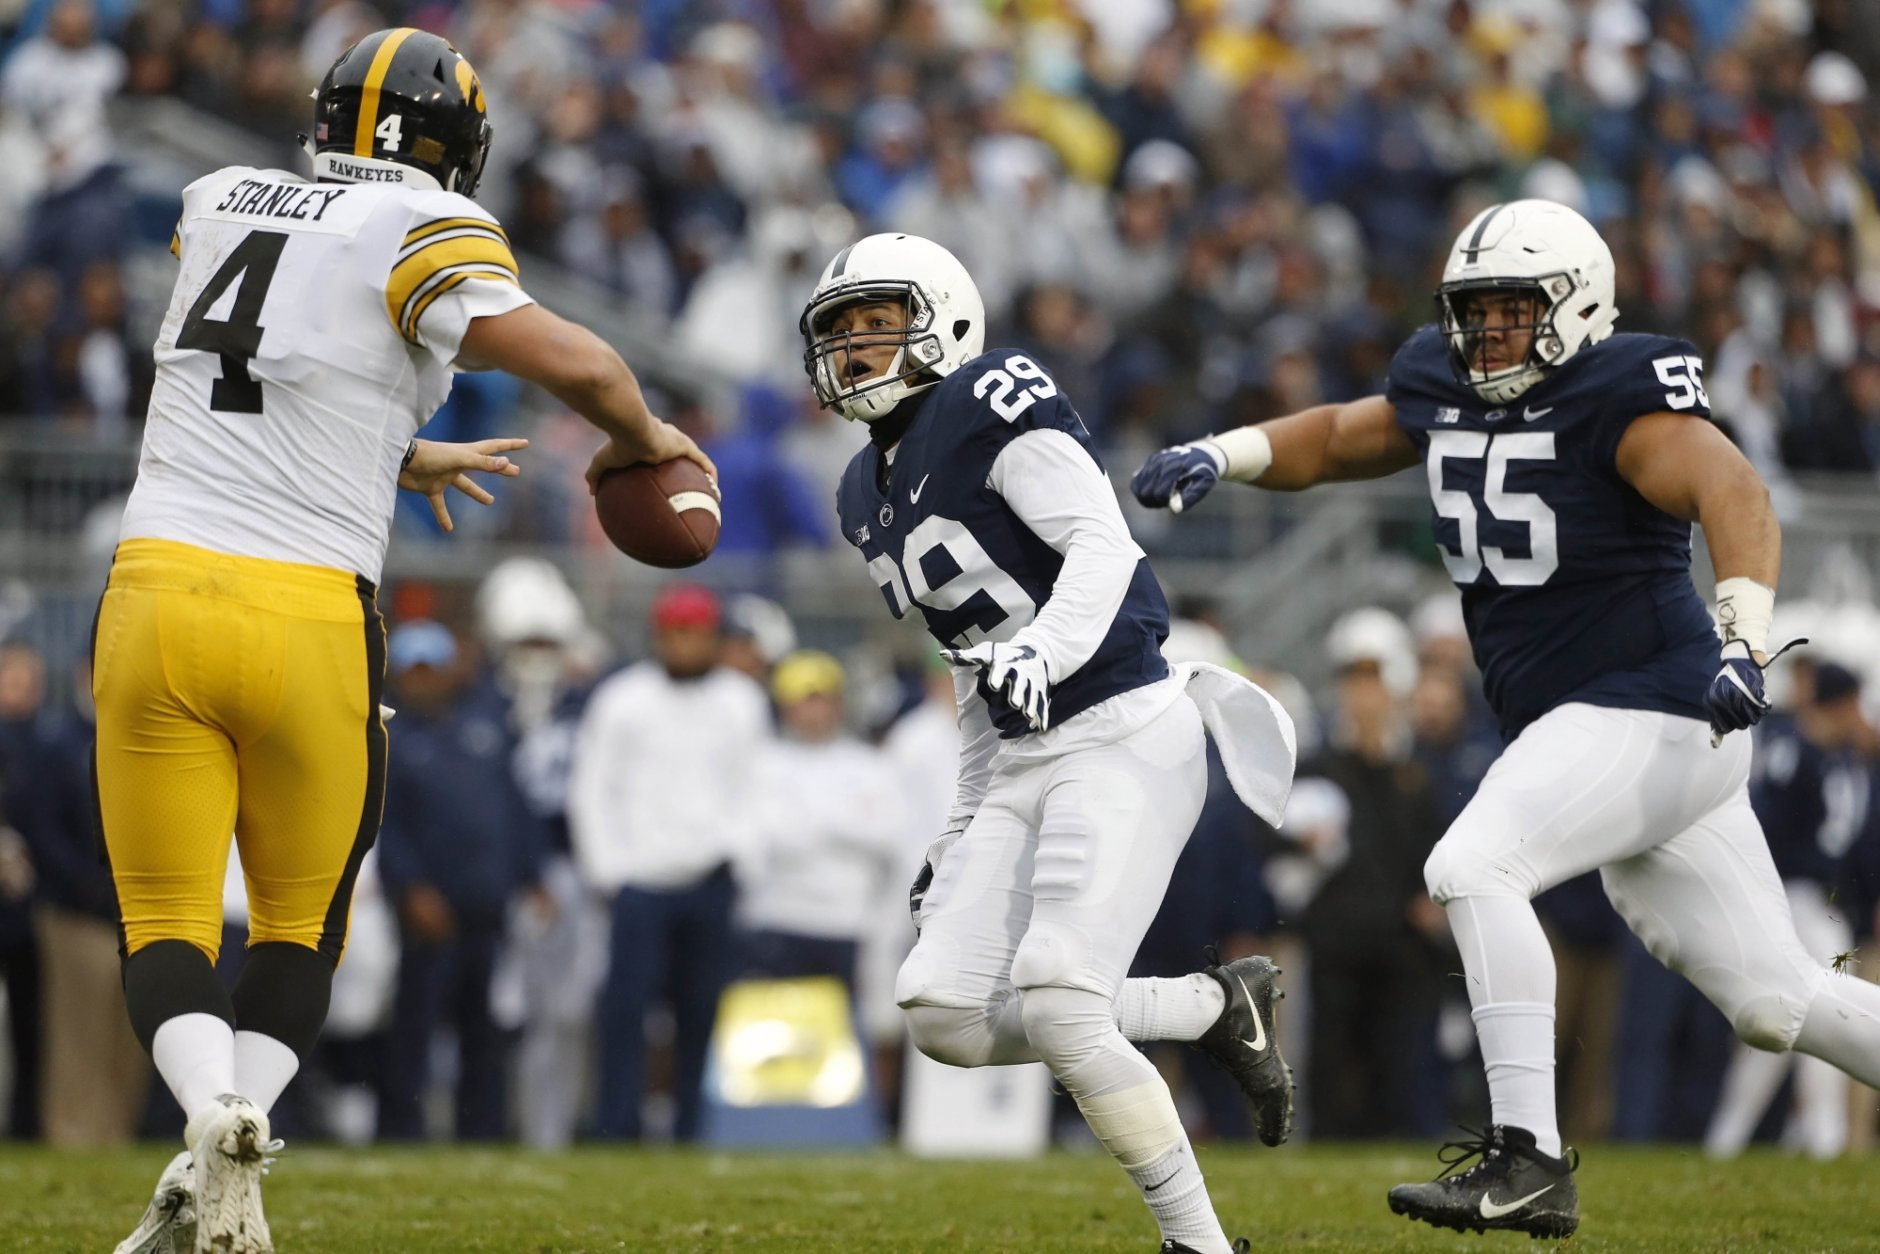 Penn State's John Reid (29) and Antonio Shelton (55) chase down Iowa quarterback Nate Stanley (4) during the first half of an NCAA college football game in State College, Pa., Saturday, Oct. 27, 2018. (AP Photo/Chris Knight)